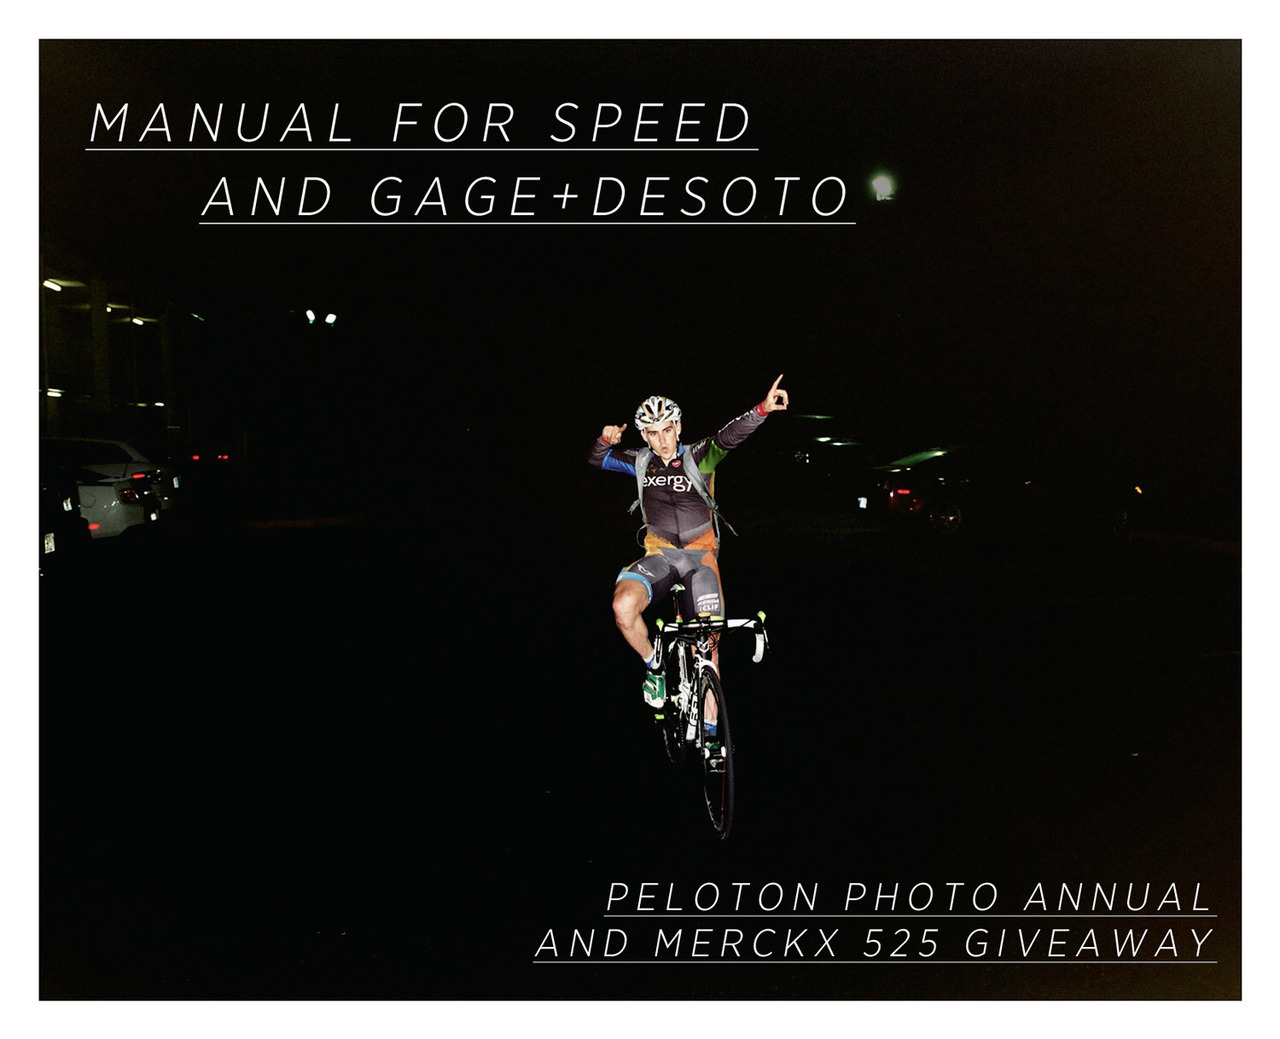 manualforspeed:  To celebrate our inclusion in the Peloton Photo Annual, Manual for Speed has teamed up with Gage+DeSoto to give away copies of the Photo Annual and a copy of Merckx 525 (because it's so awesome!). All you have to do is REBLOG (liking wont cut it) this image to be entered. Make sure you're friends with us on Facebook and follow our Twitter (@manualforspeed) as well. And definitely check out G+D's store, your one-stop-shop for road cycling culture.   Winners will be chosen Friday.   Good luck!